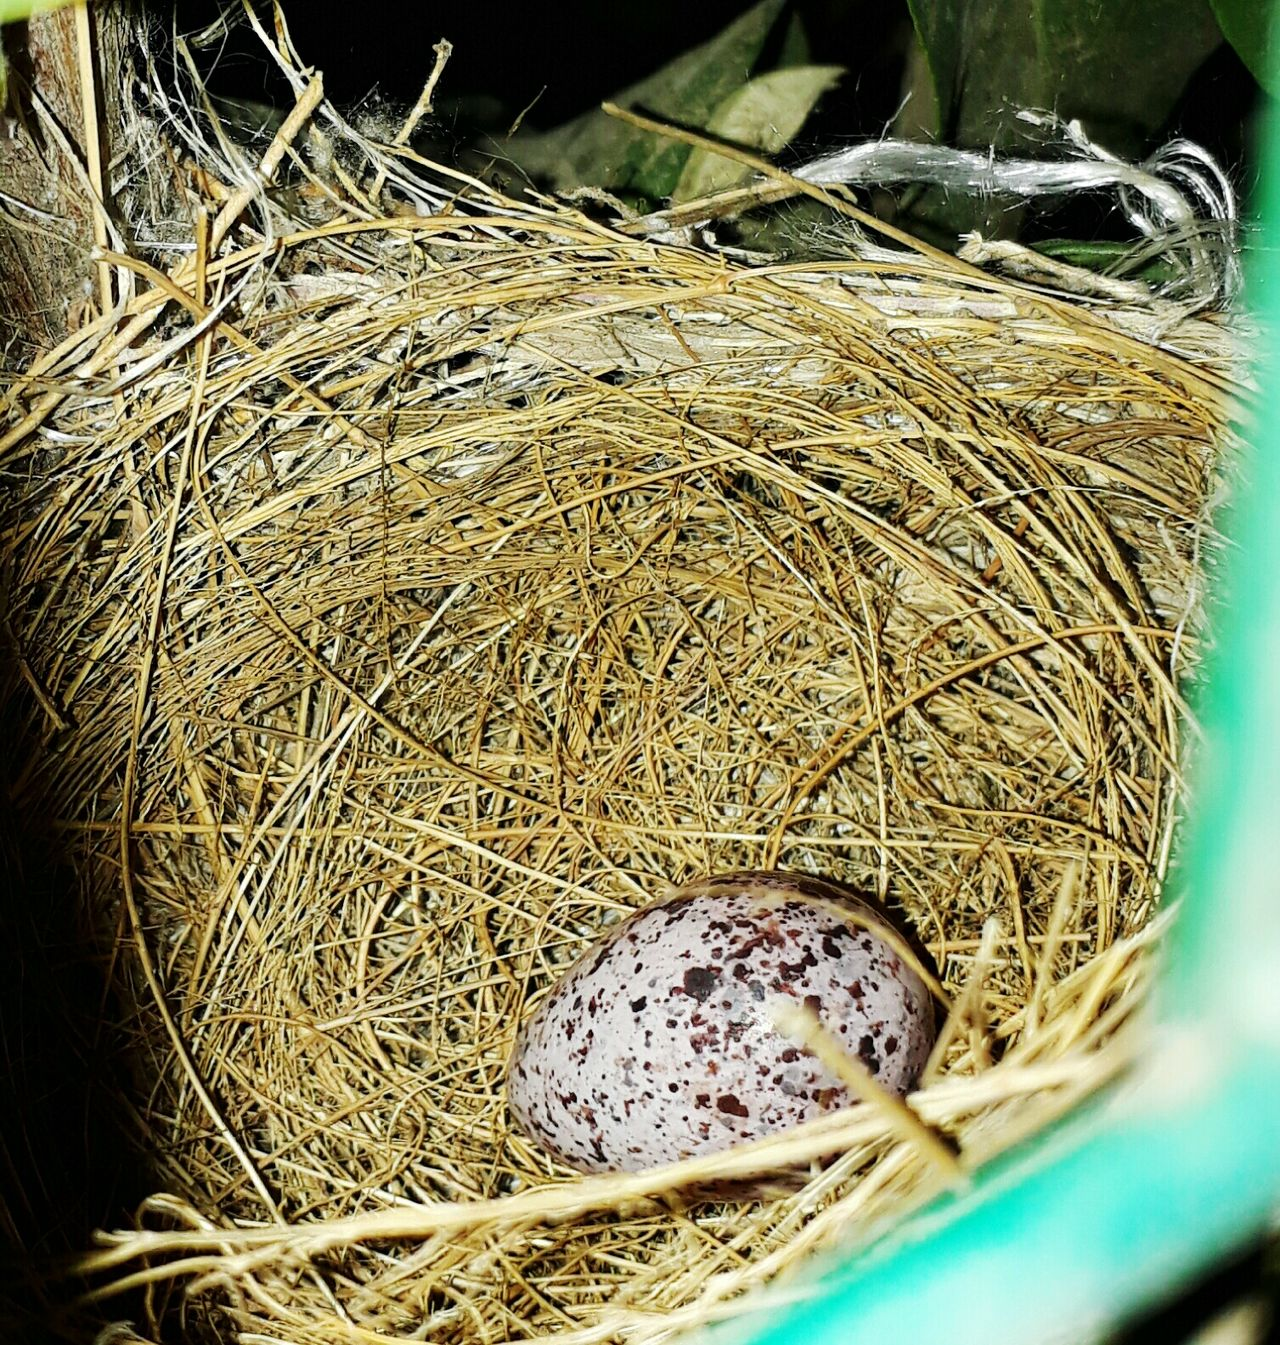 No People High Angle View Outdoors Close-up Nature Birds Egg